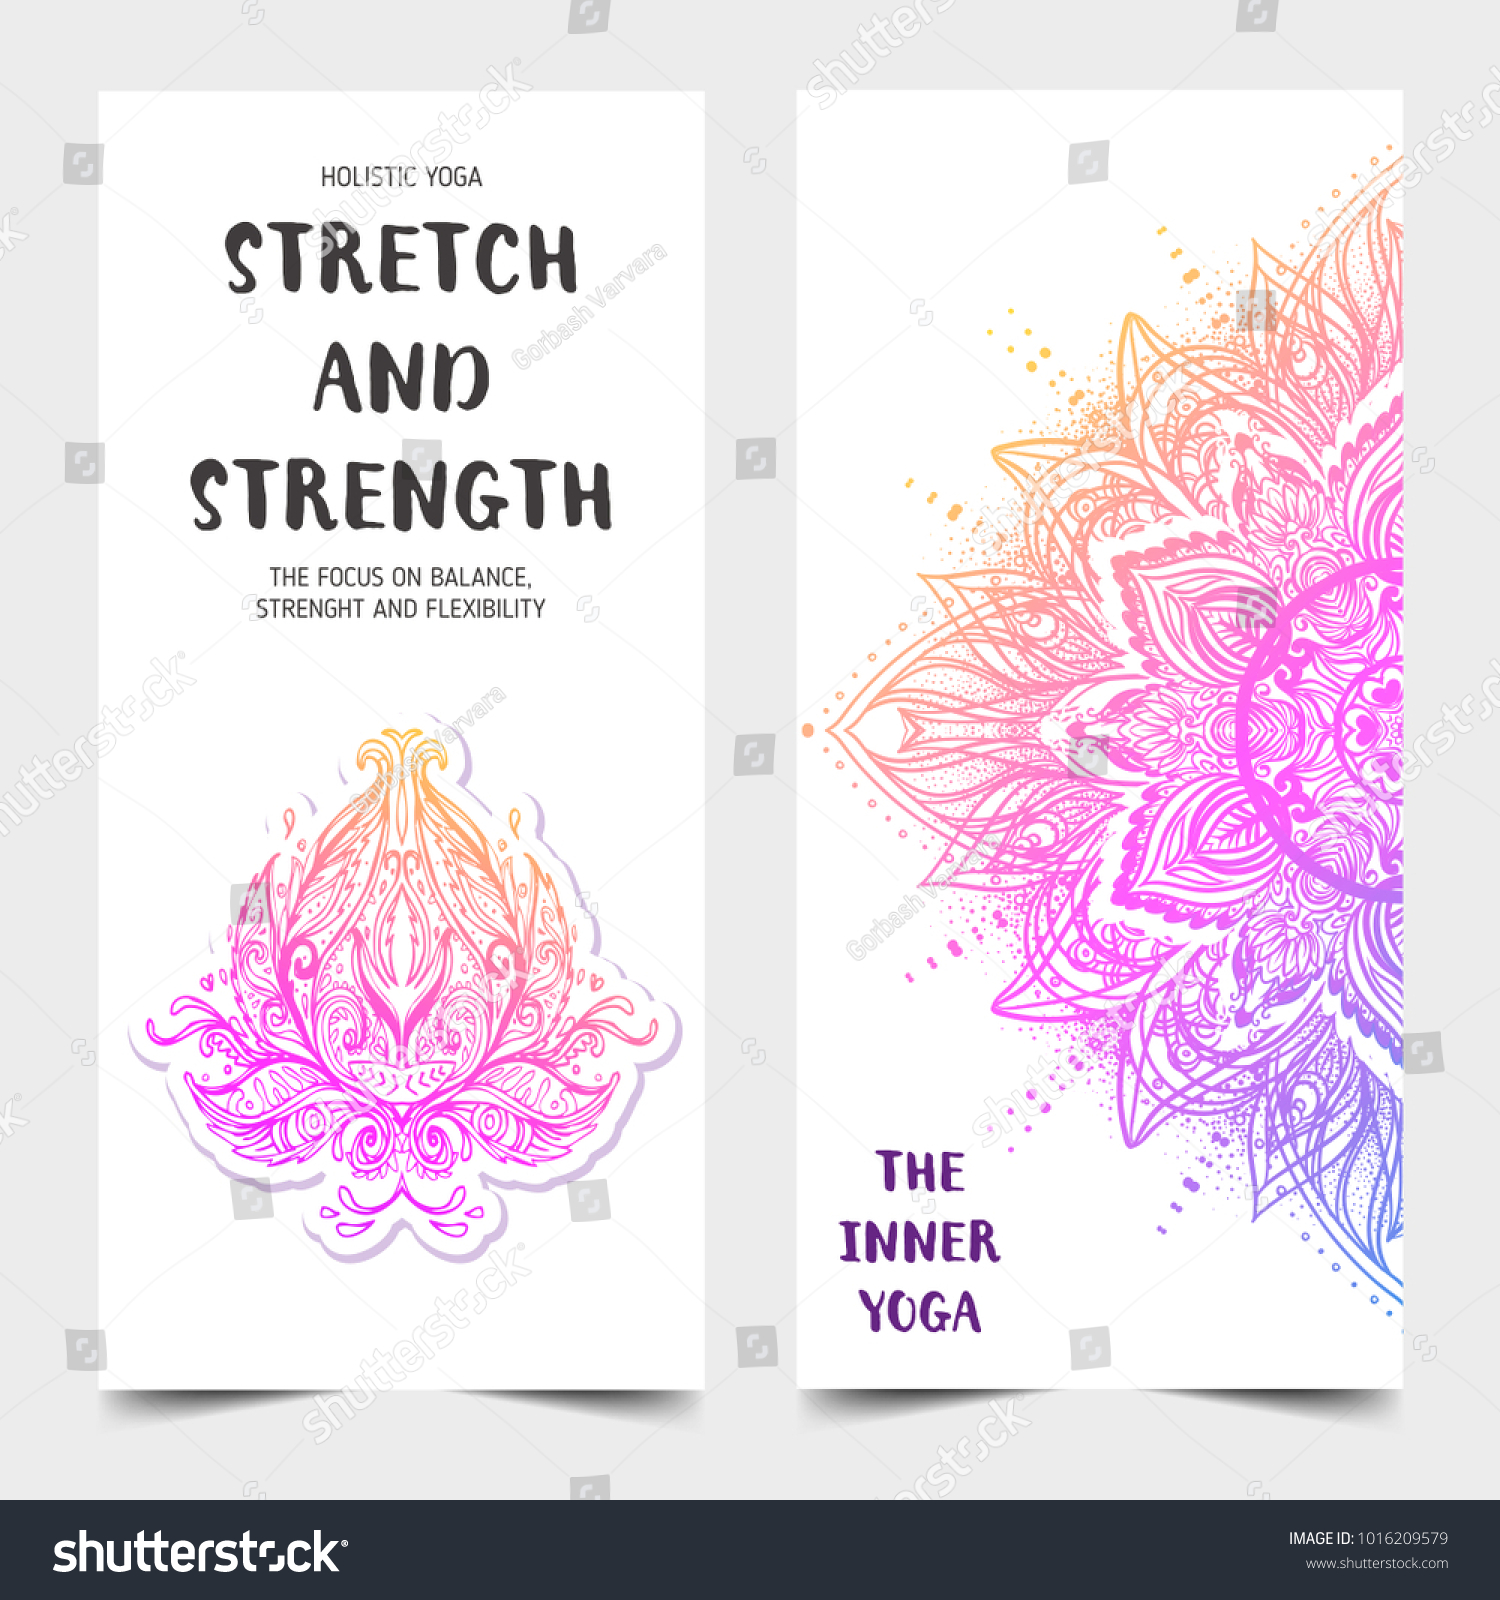 Stretch Strength Yoga Card Design Colorful Stock Vector 1016209579 ...